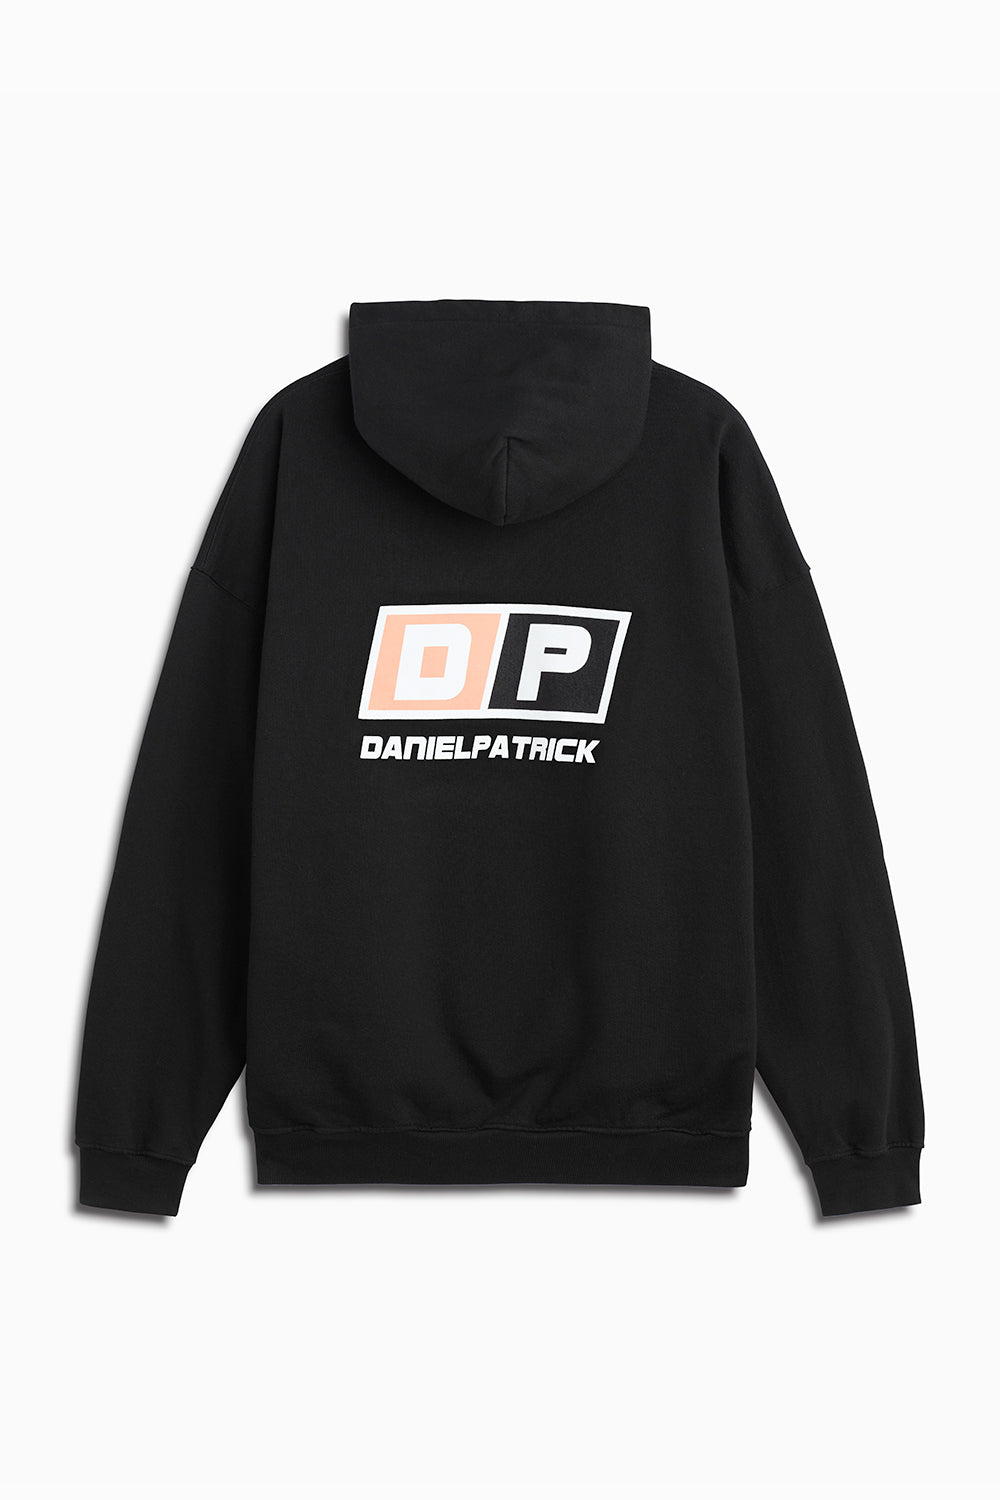 motorsport hoodie in black/coral by daniel patrick